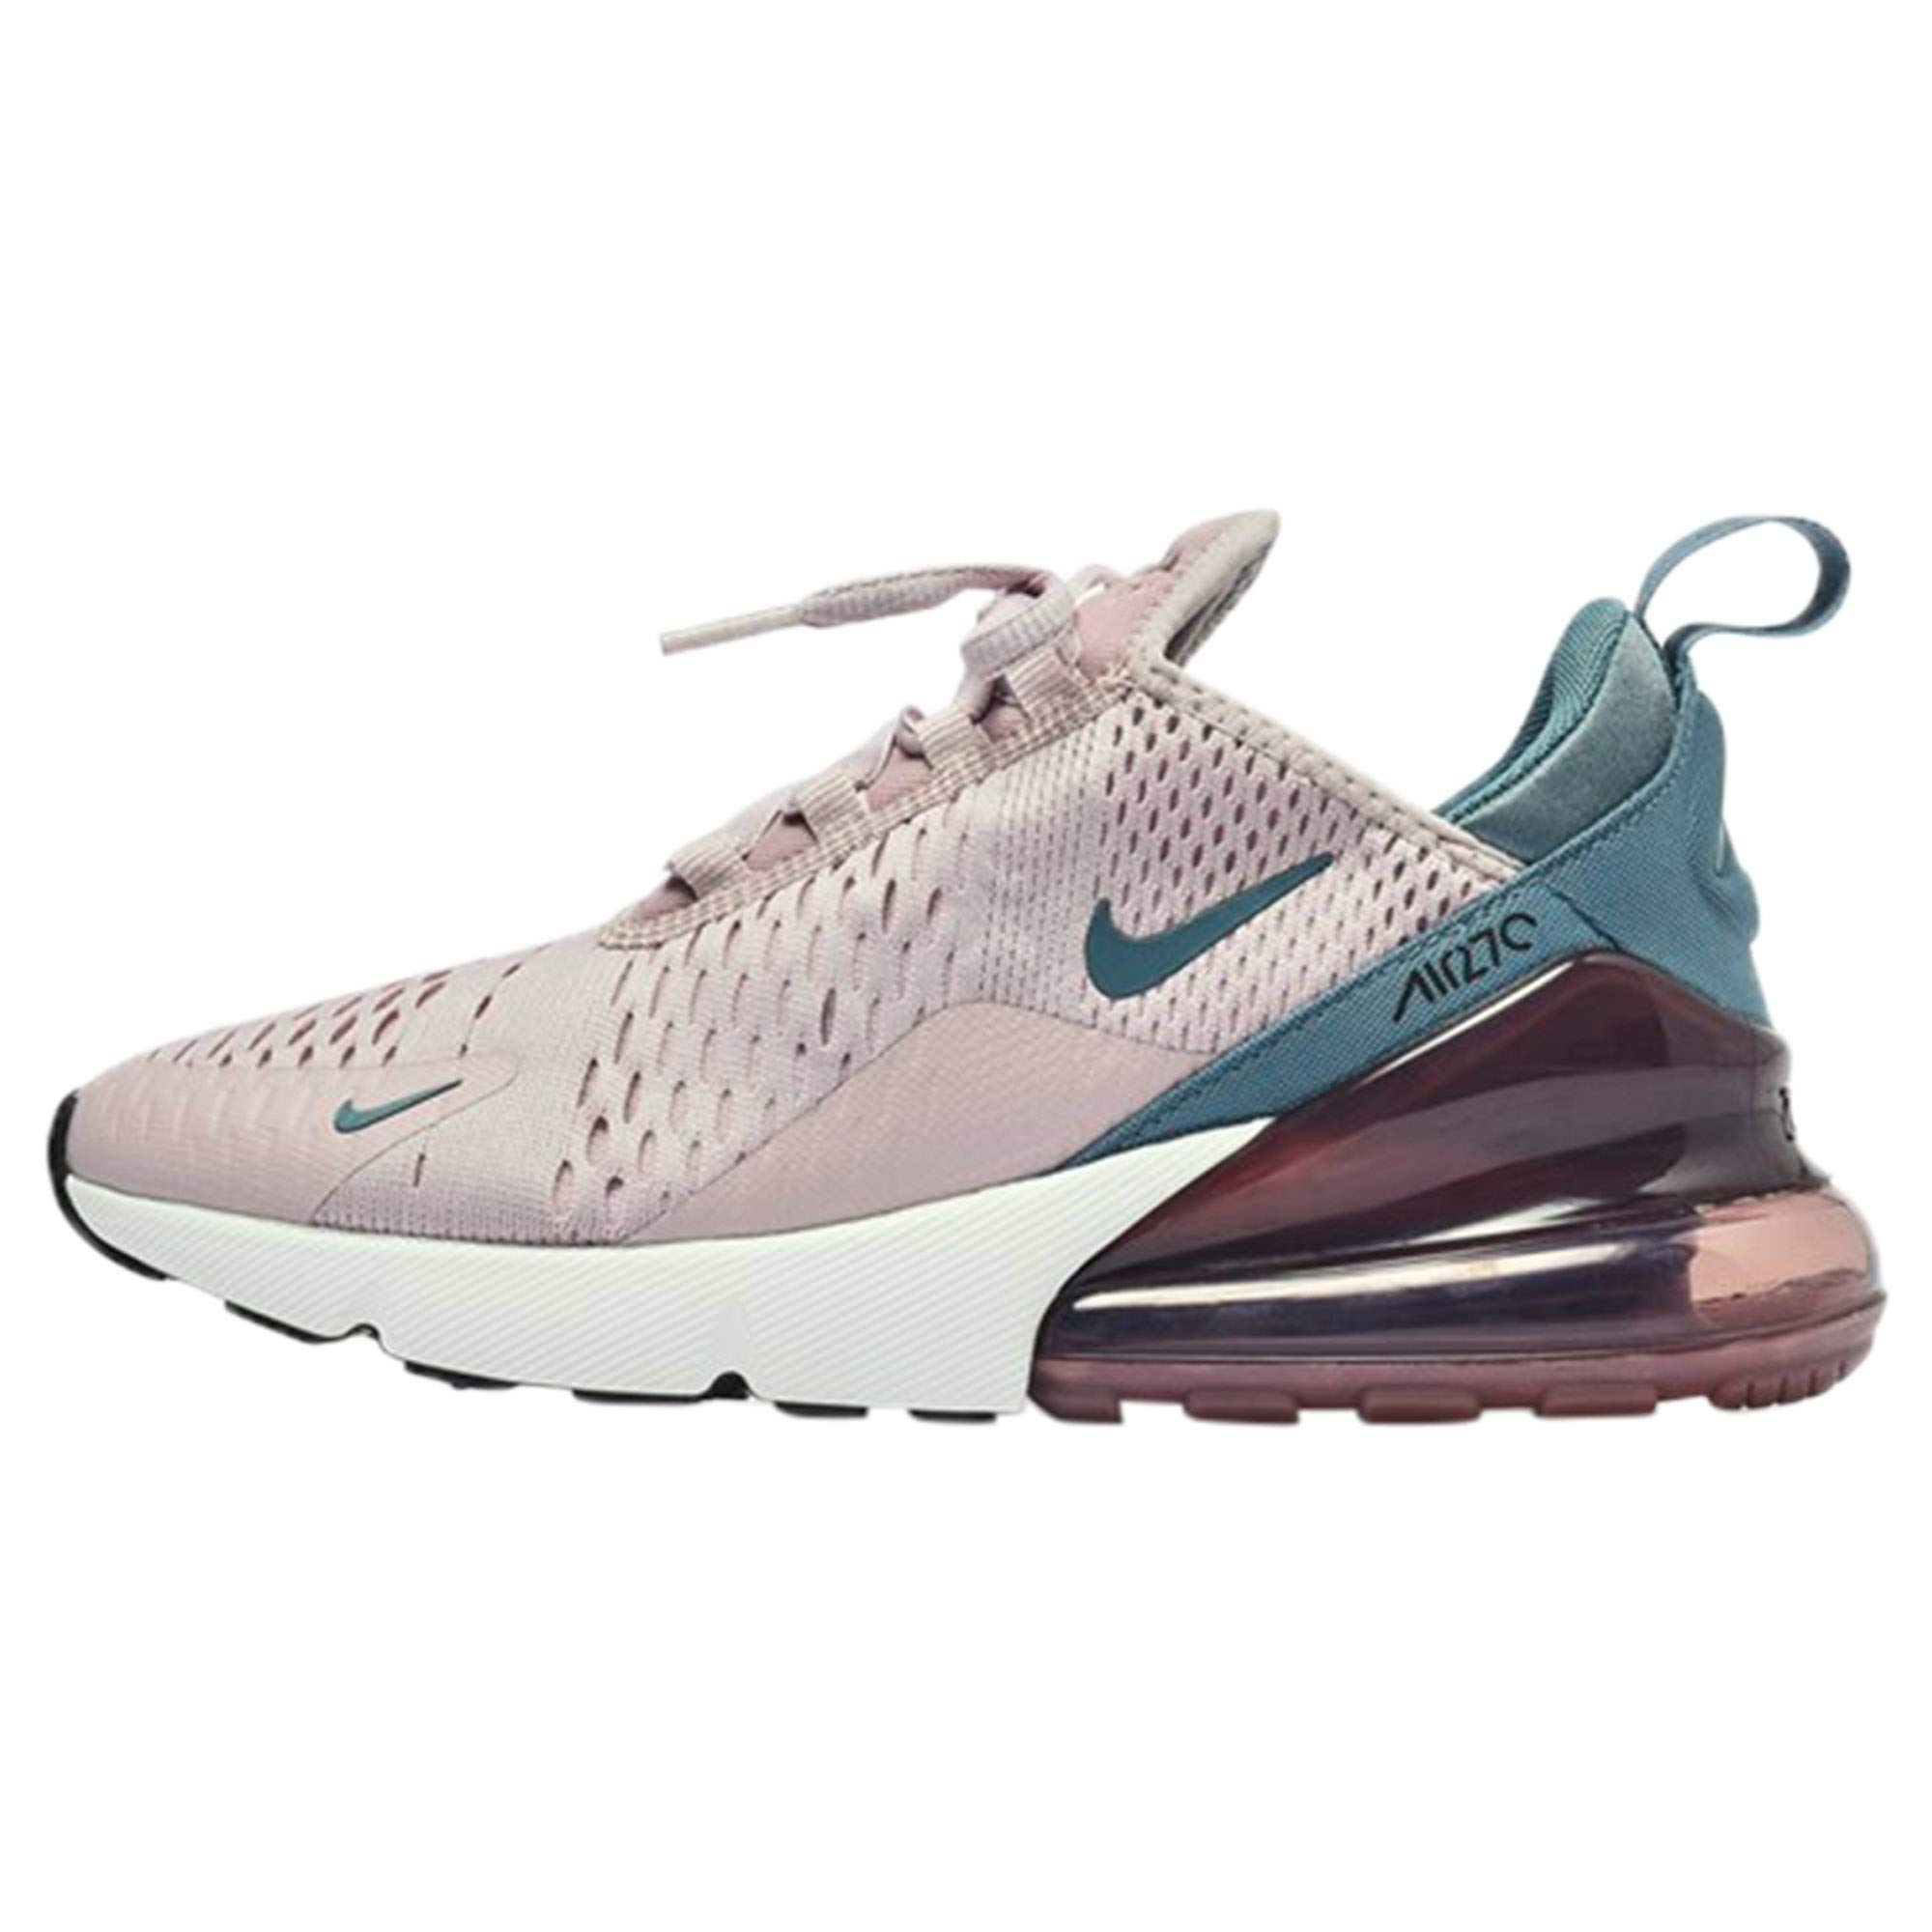 buy online 46cab 86b9a Galleon - Nike Women s WMNS Air Max 270, Particle Rose Celestial Teal, 6.5  US